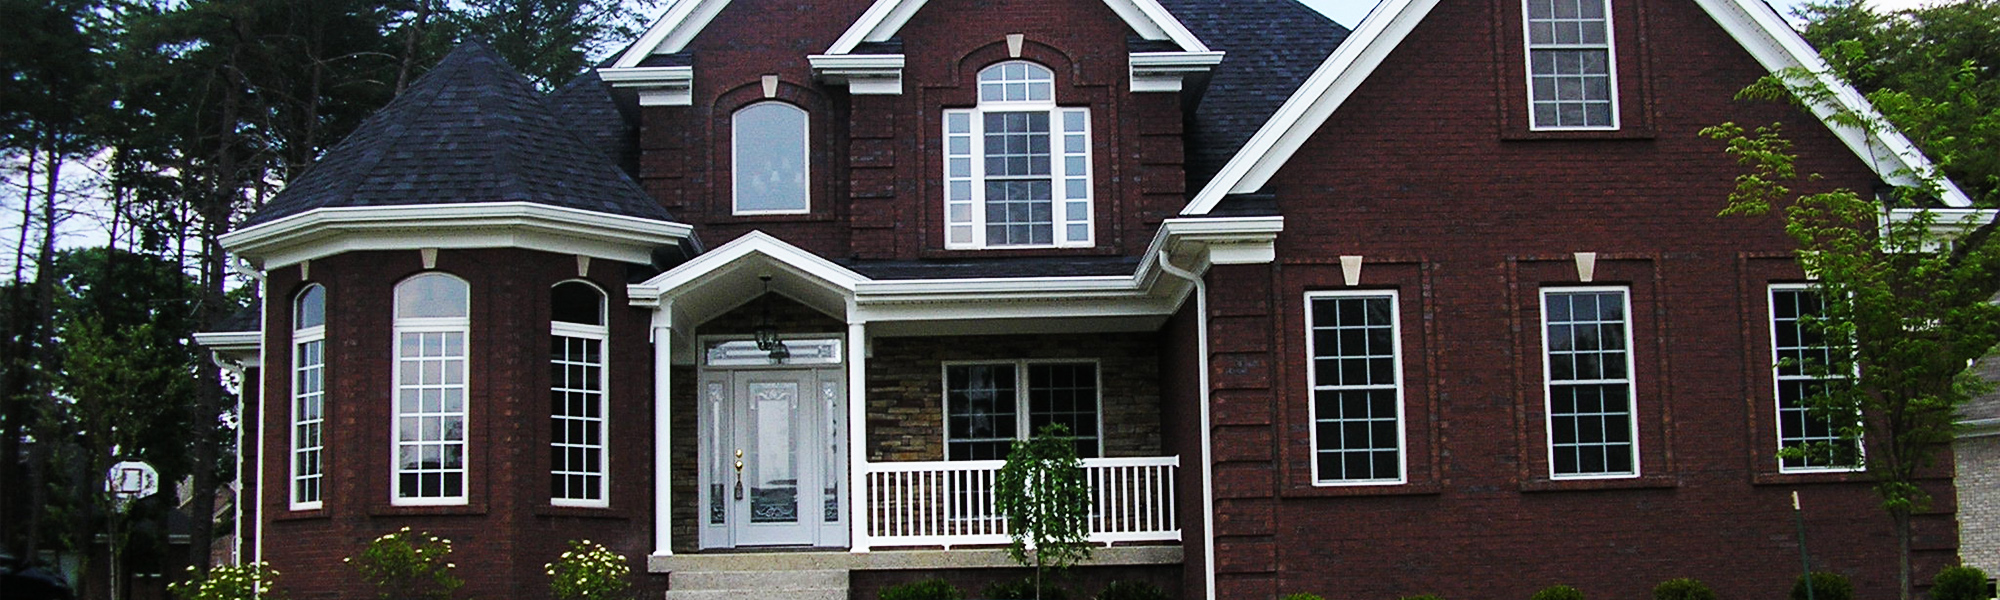 latest advice for building your dream home with advice for building a house. & Advice For Building A House. Finest Header With Advice For Building ...